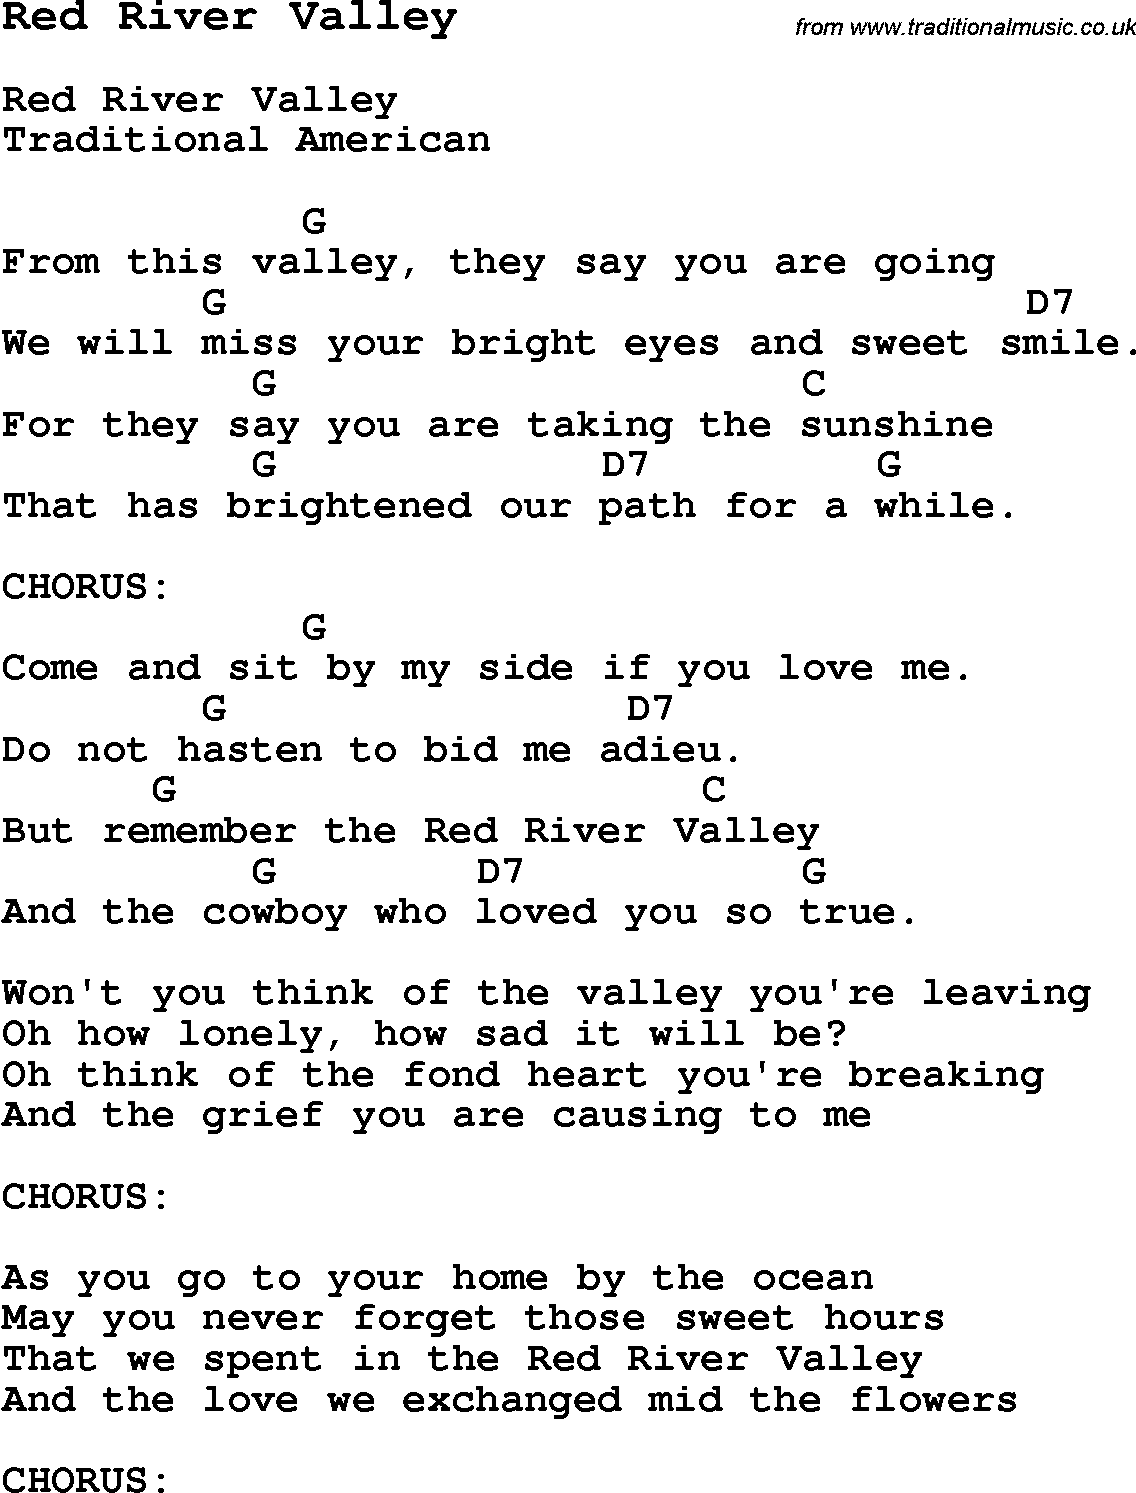 Traditional Song Red River Valley With Chords Tabs And Lyrics